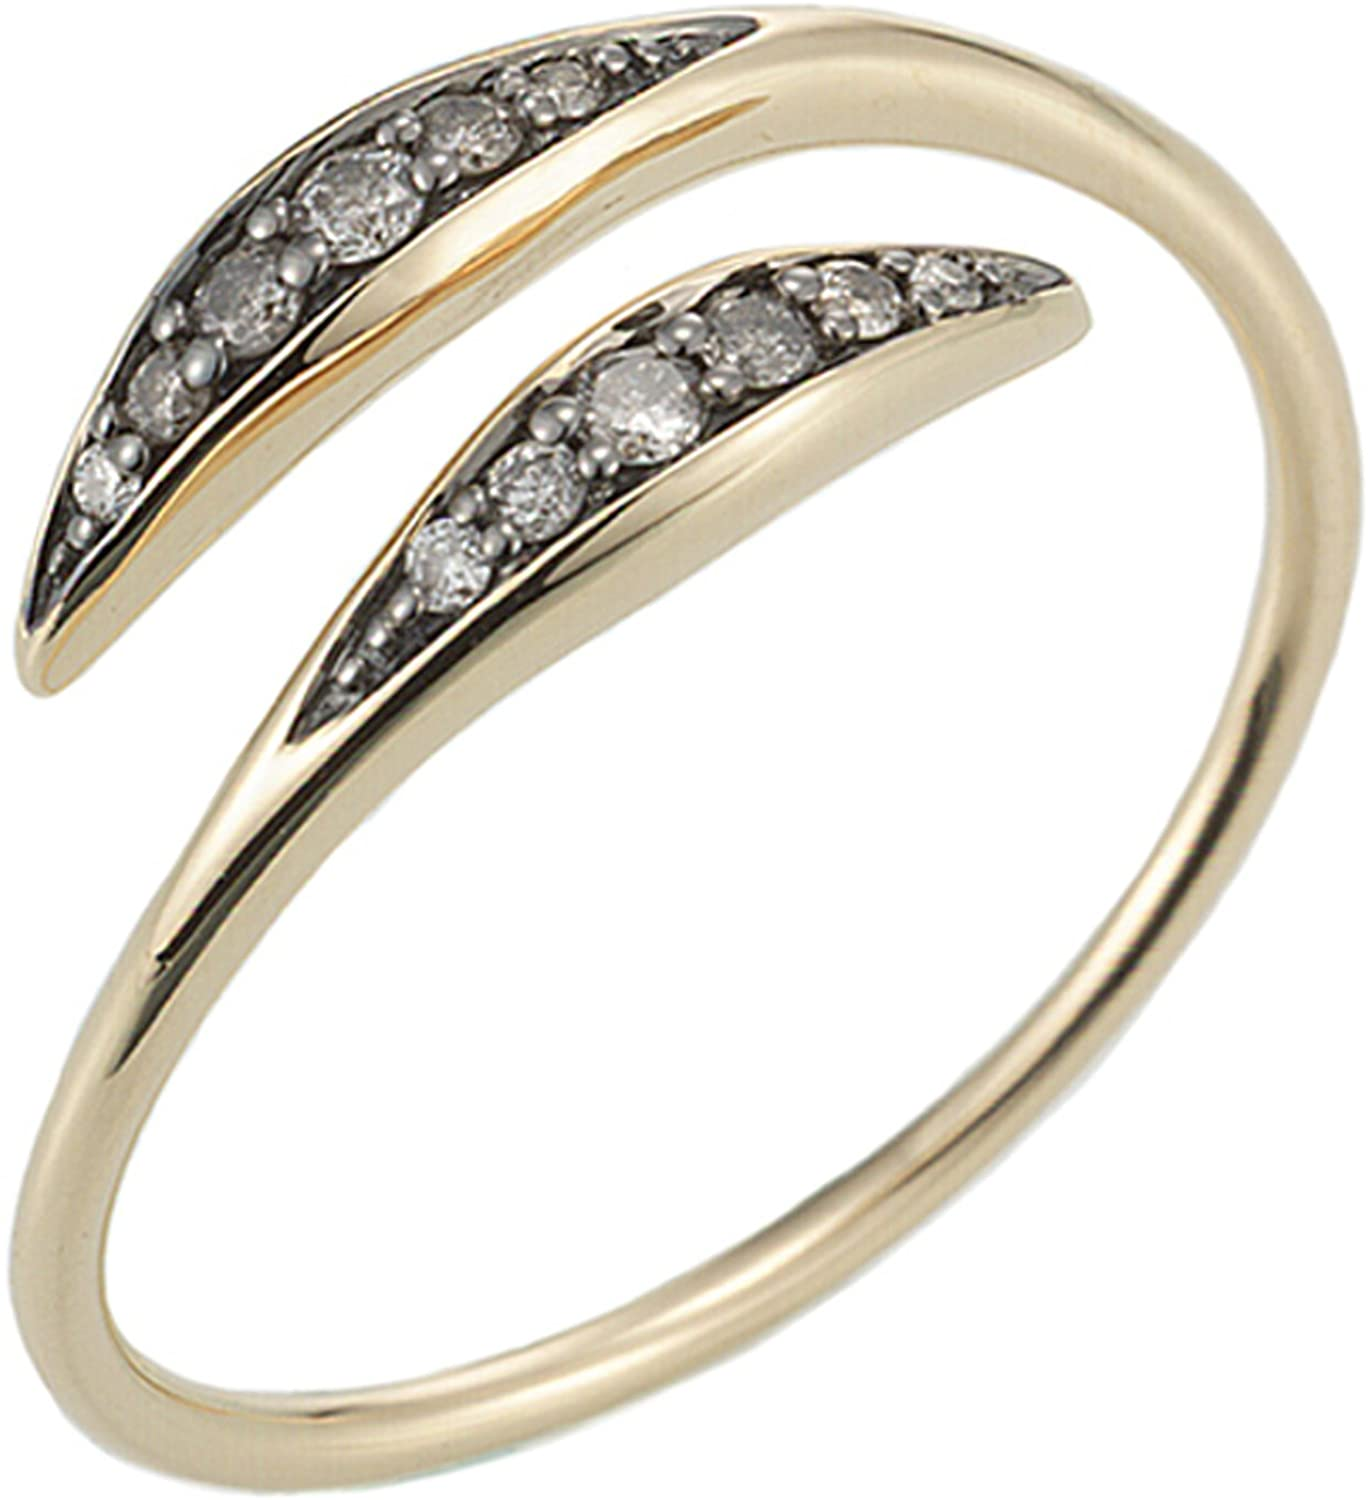 JEWELISTA Natural Diamond Bypass Ring in 14K Yellow Gold